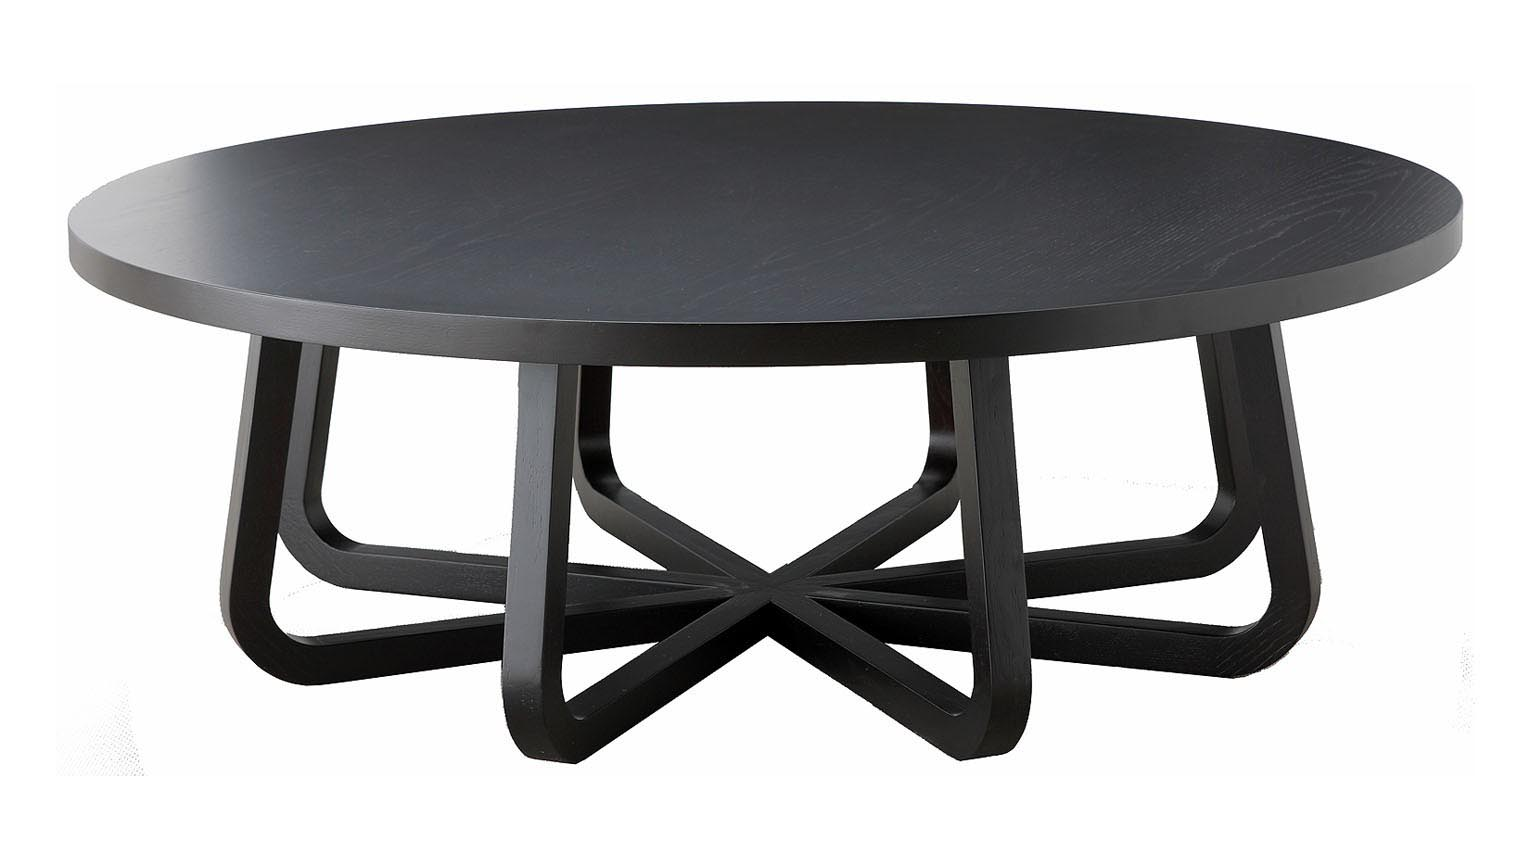 Black round coffee table coffee table design ideas for Round glass coffee table top